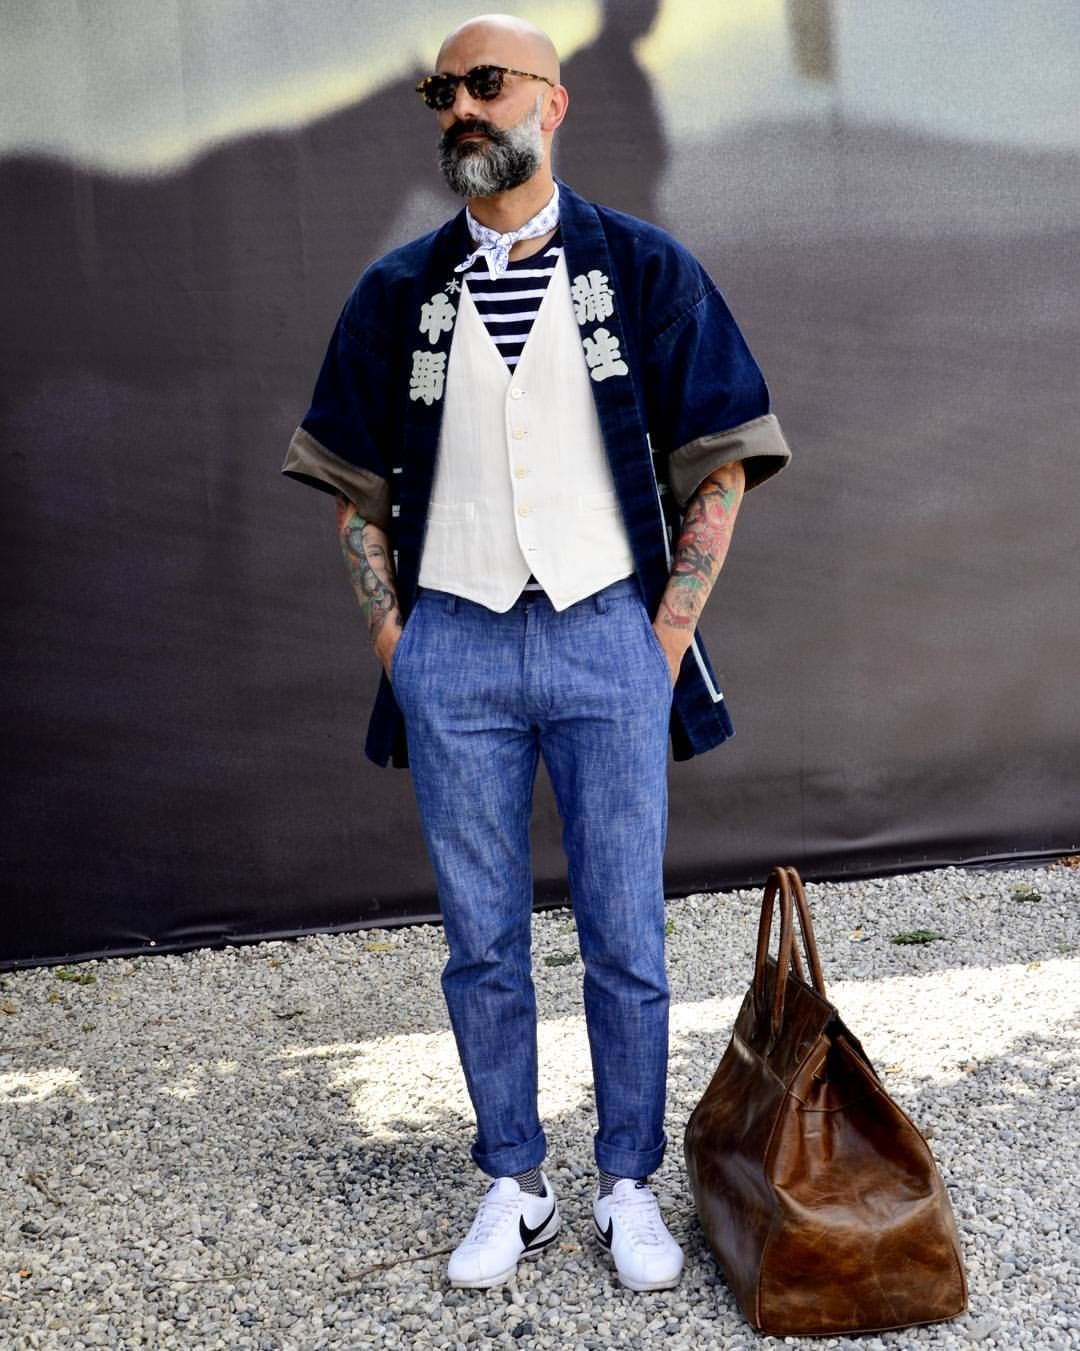 My reportage of Pittiuomo90 Charleyph x @gentlemen_wear_daily